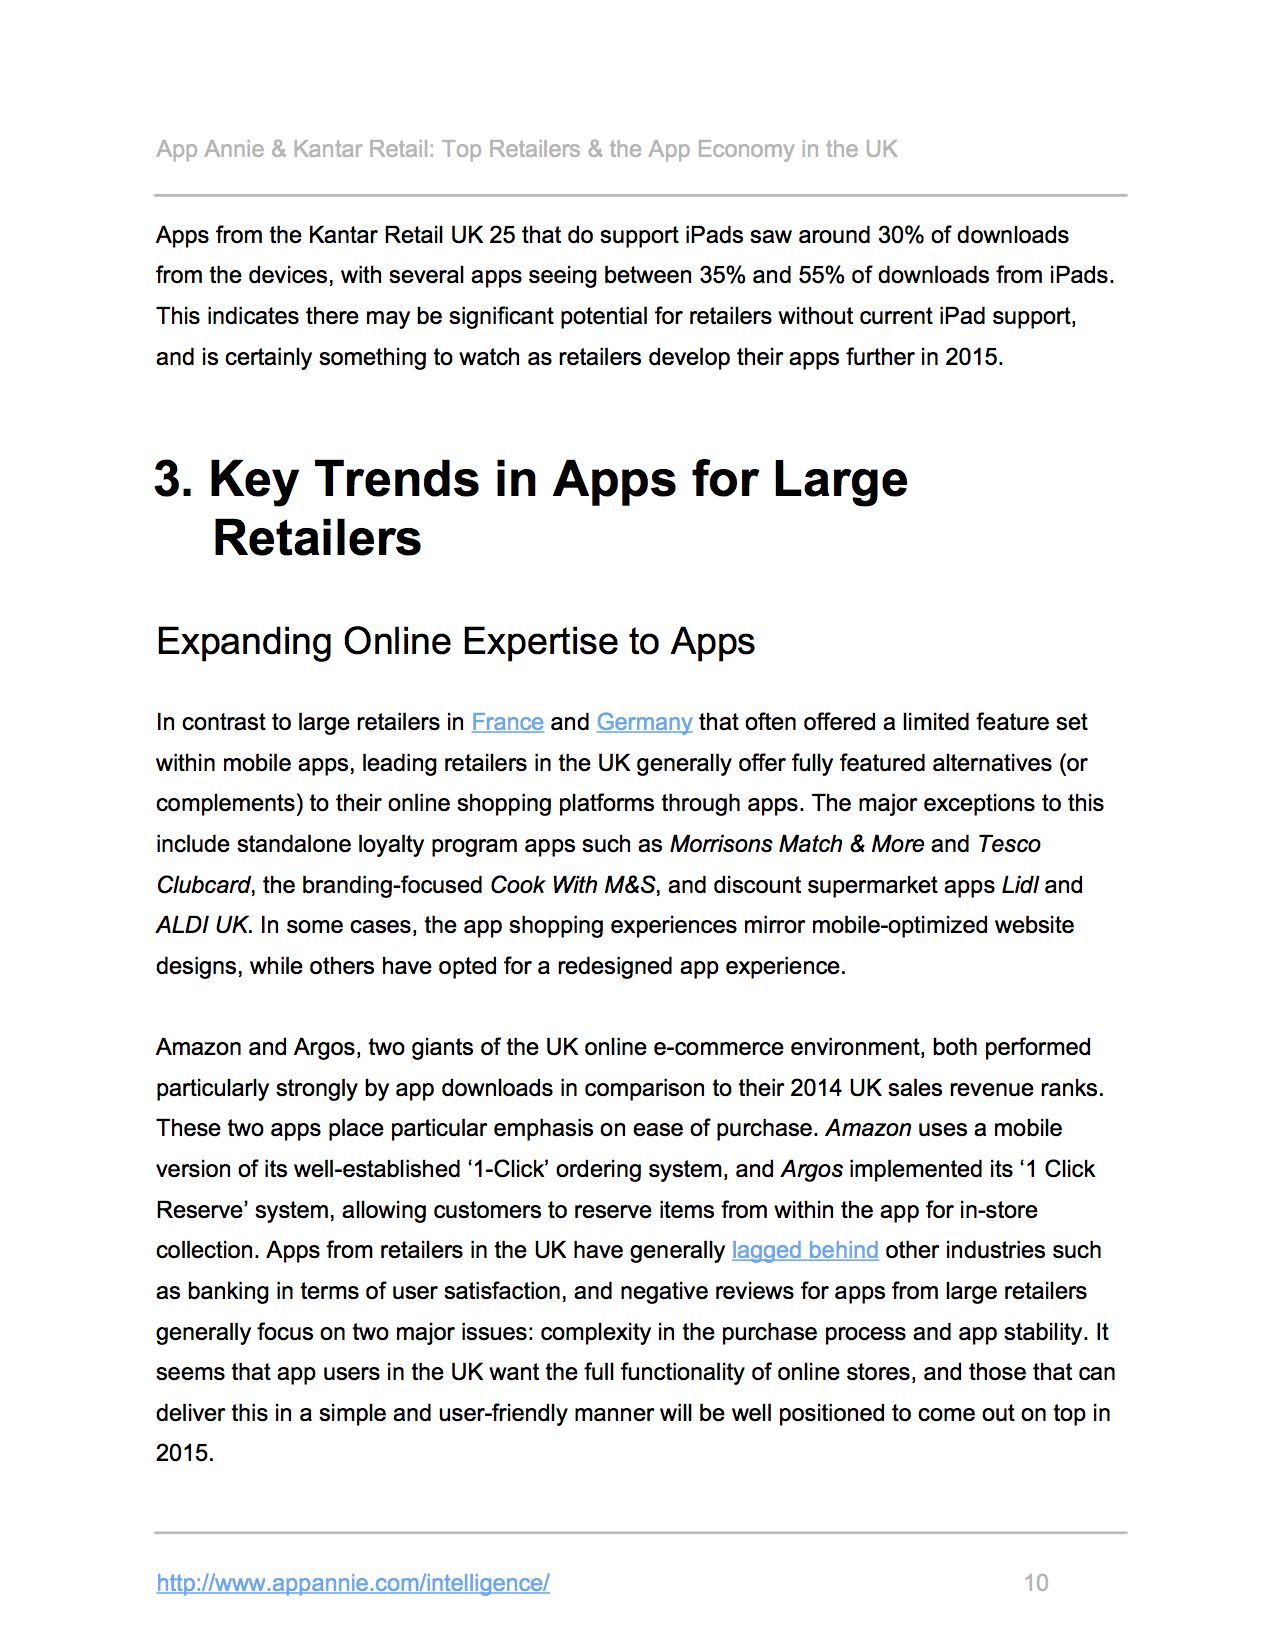 App Annie and Kantar Retail Explore the UK's Retail App